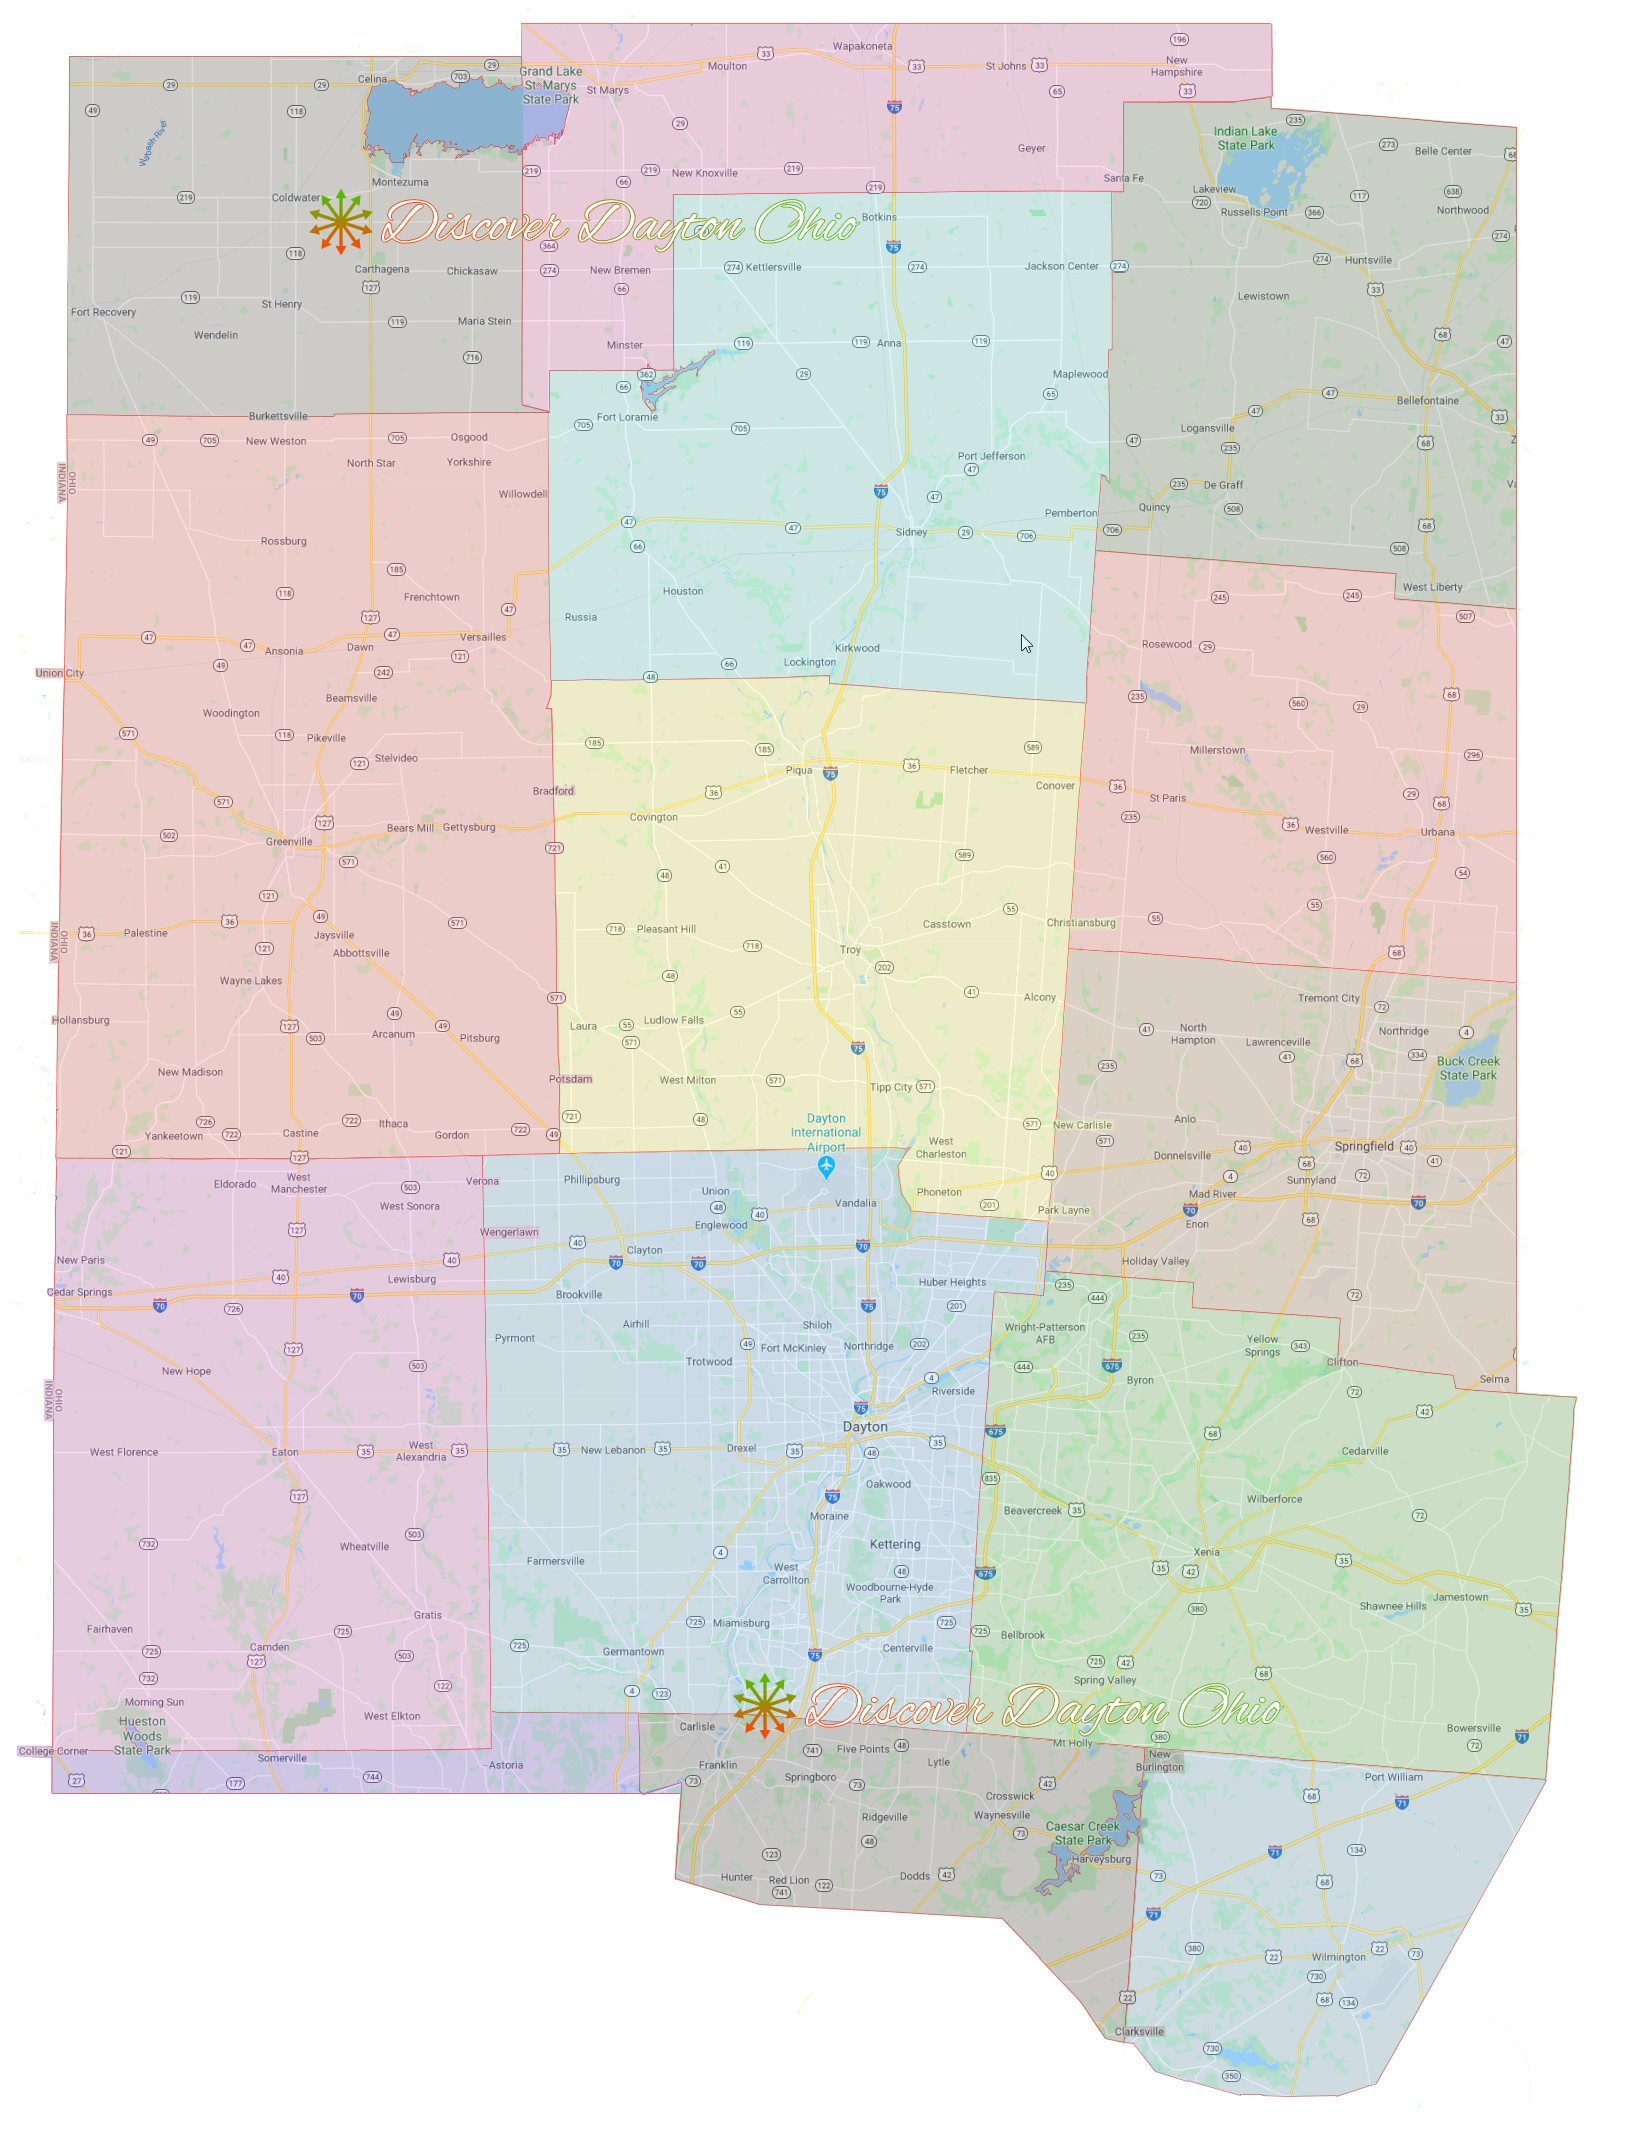 Discover Dayton Ohio Area Map